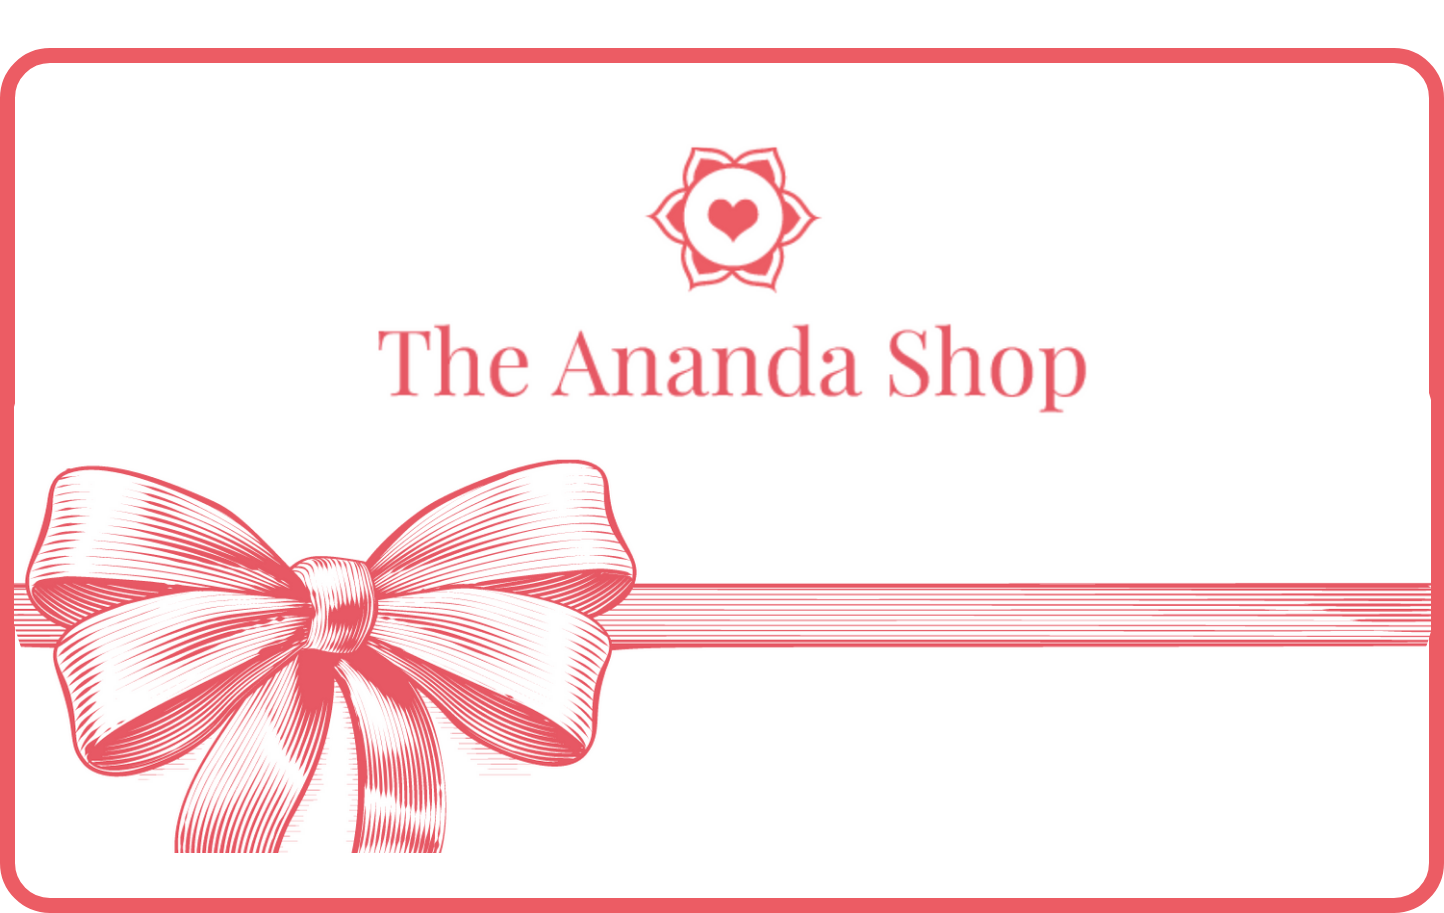 The Ananda Shop gift card